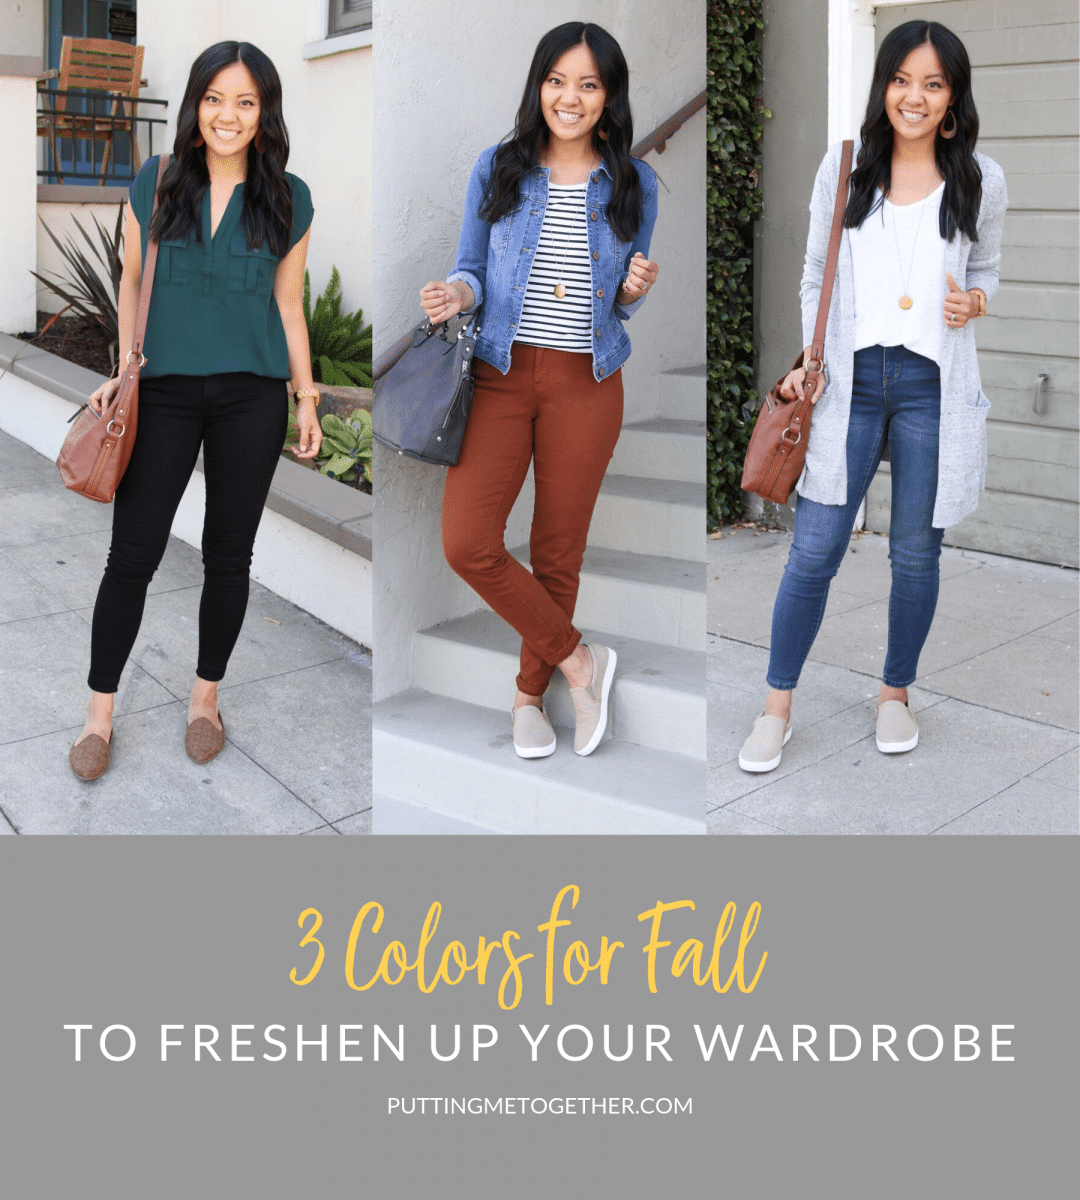 Colors for Fall to Freshen Up Your Wardrobe